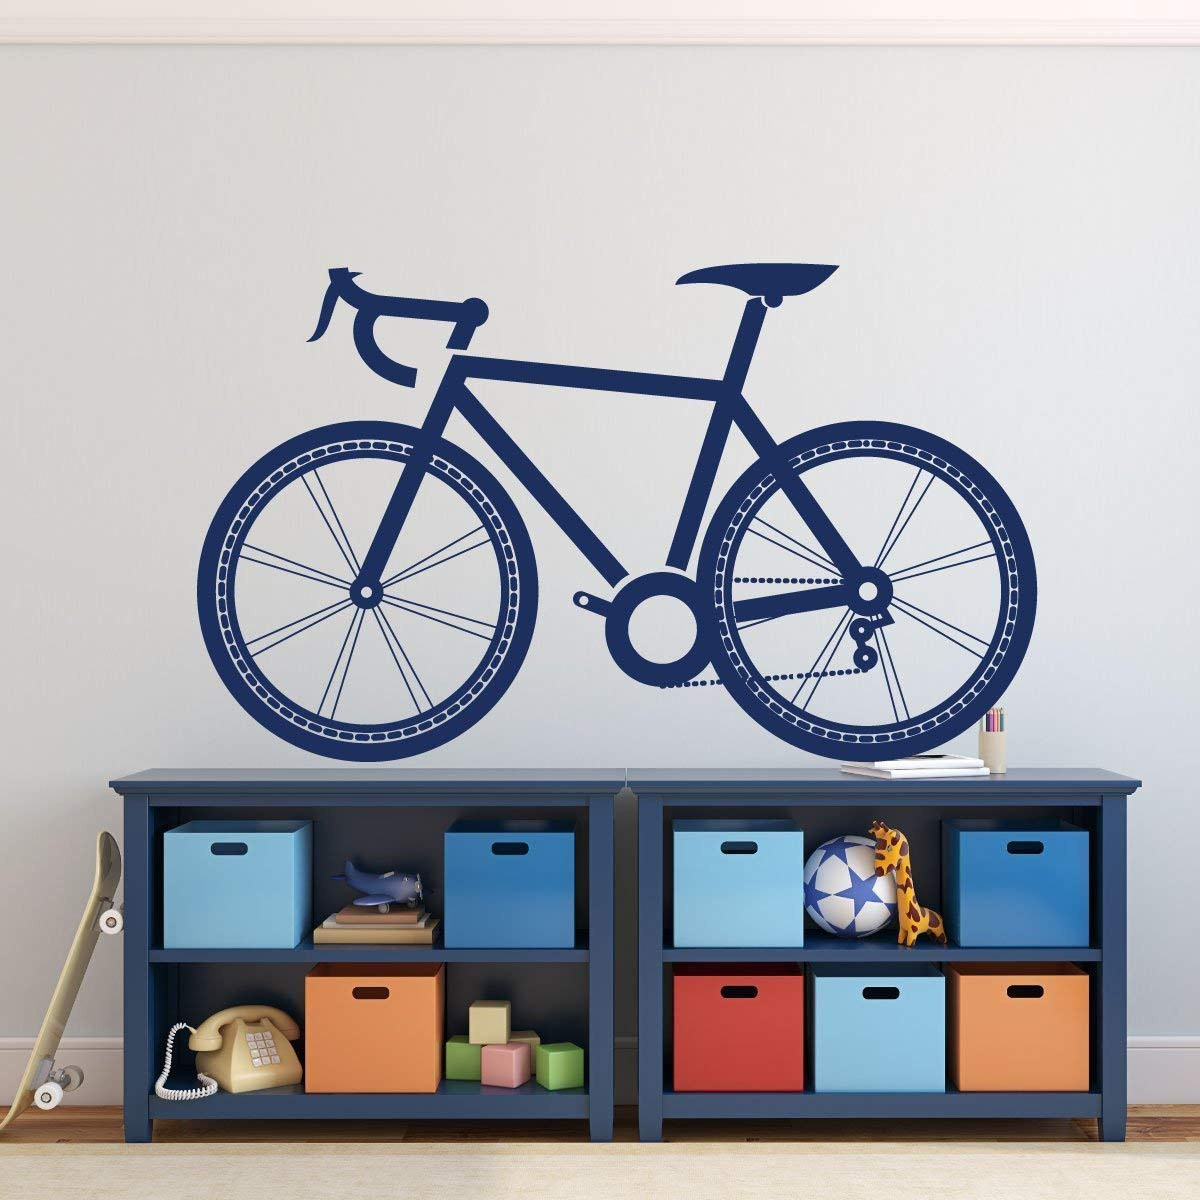 Bike Wall Decal Vinyl Sticker Vinyl Decor Wall Decal With Regard To Most Up To Date Bike Wall Decor (View 2 of 20)